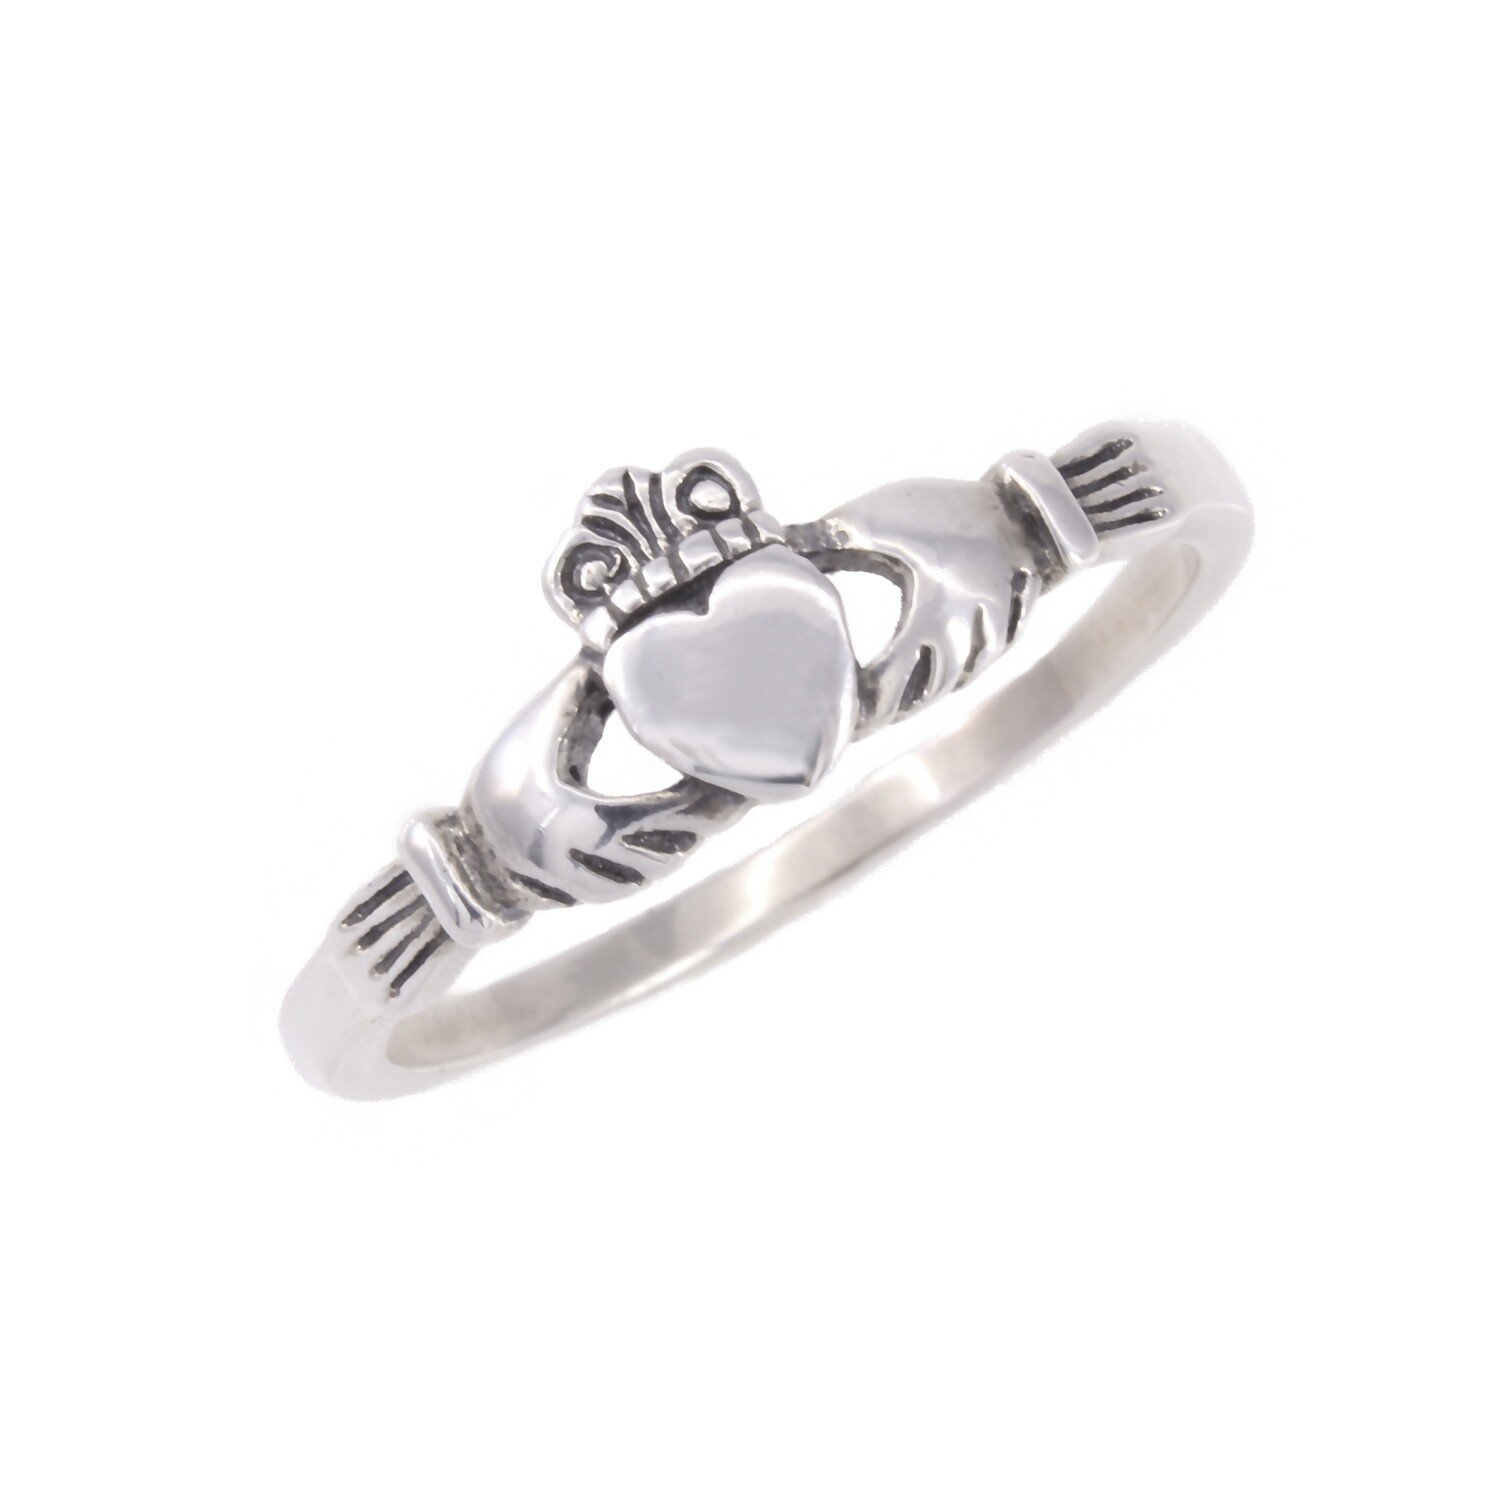 RP1694 Sterling Silver Claddagh Ring